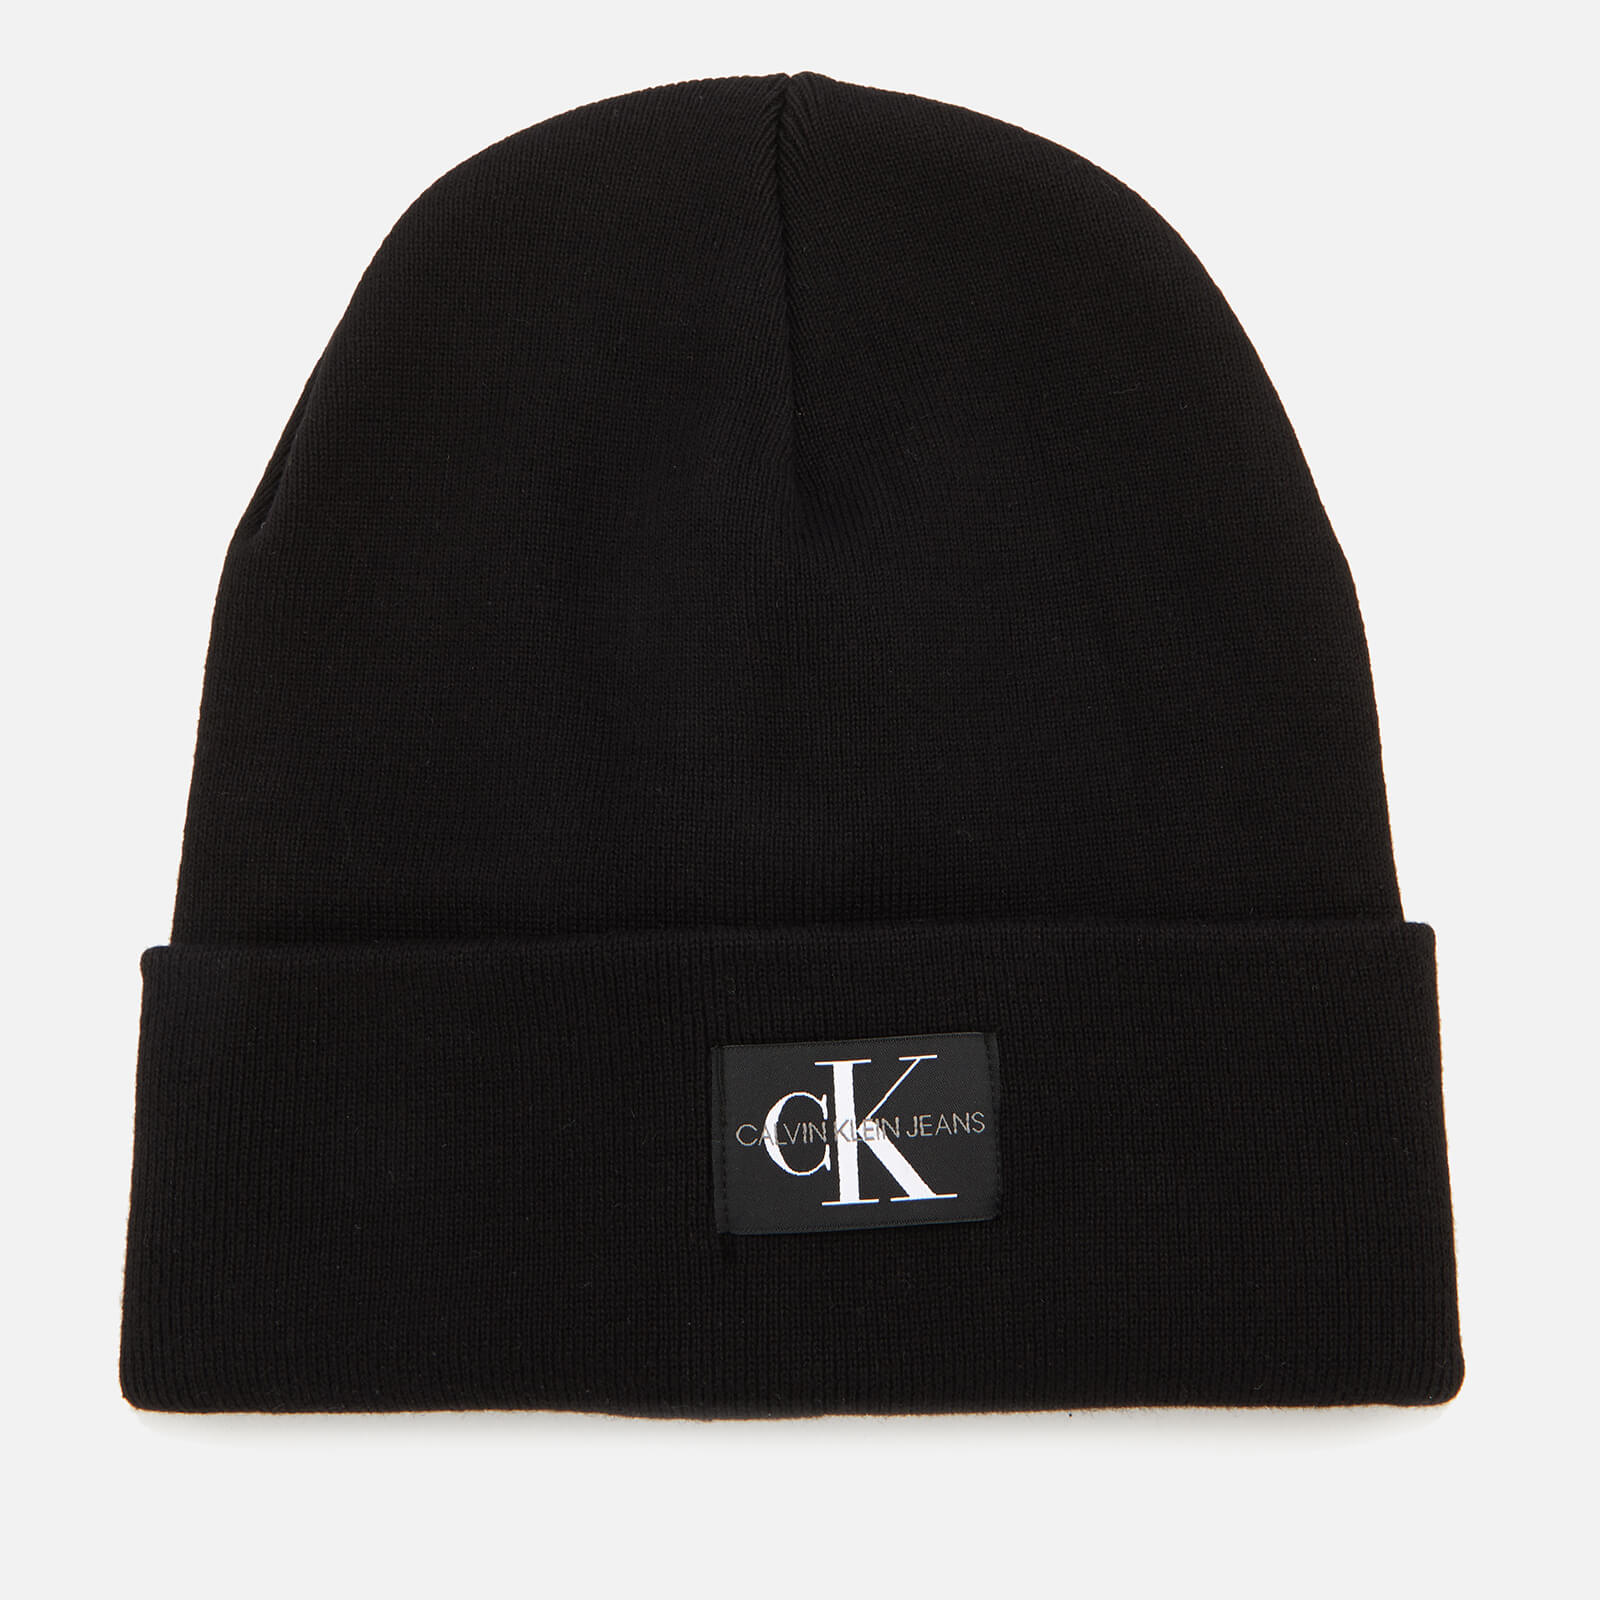 9e35a4d4f88 Calvin Klein Women s J Monogram Beanie Hat - Black Womens Accessories